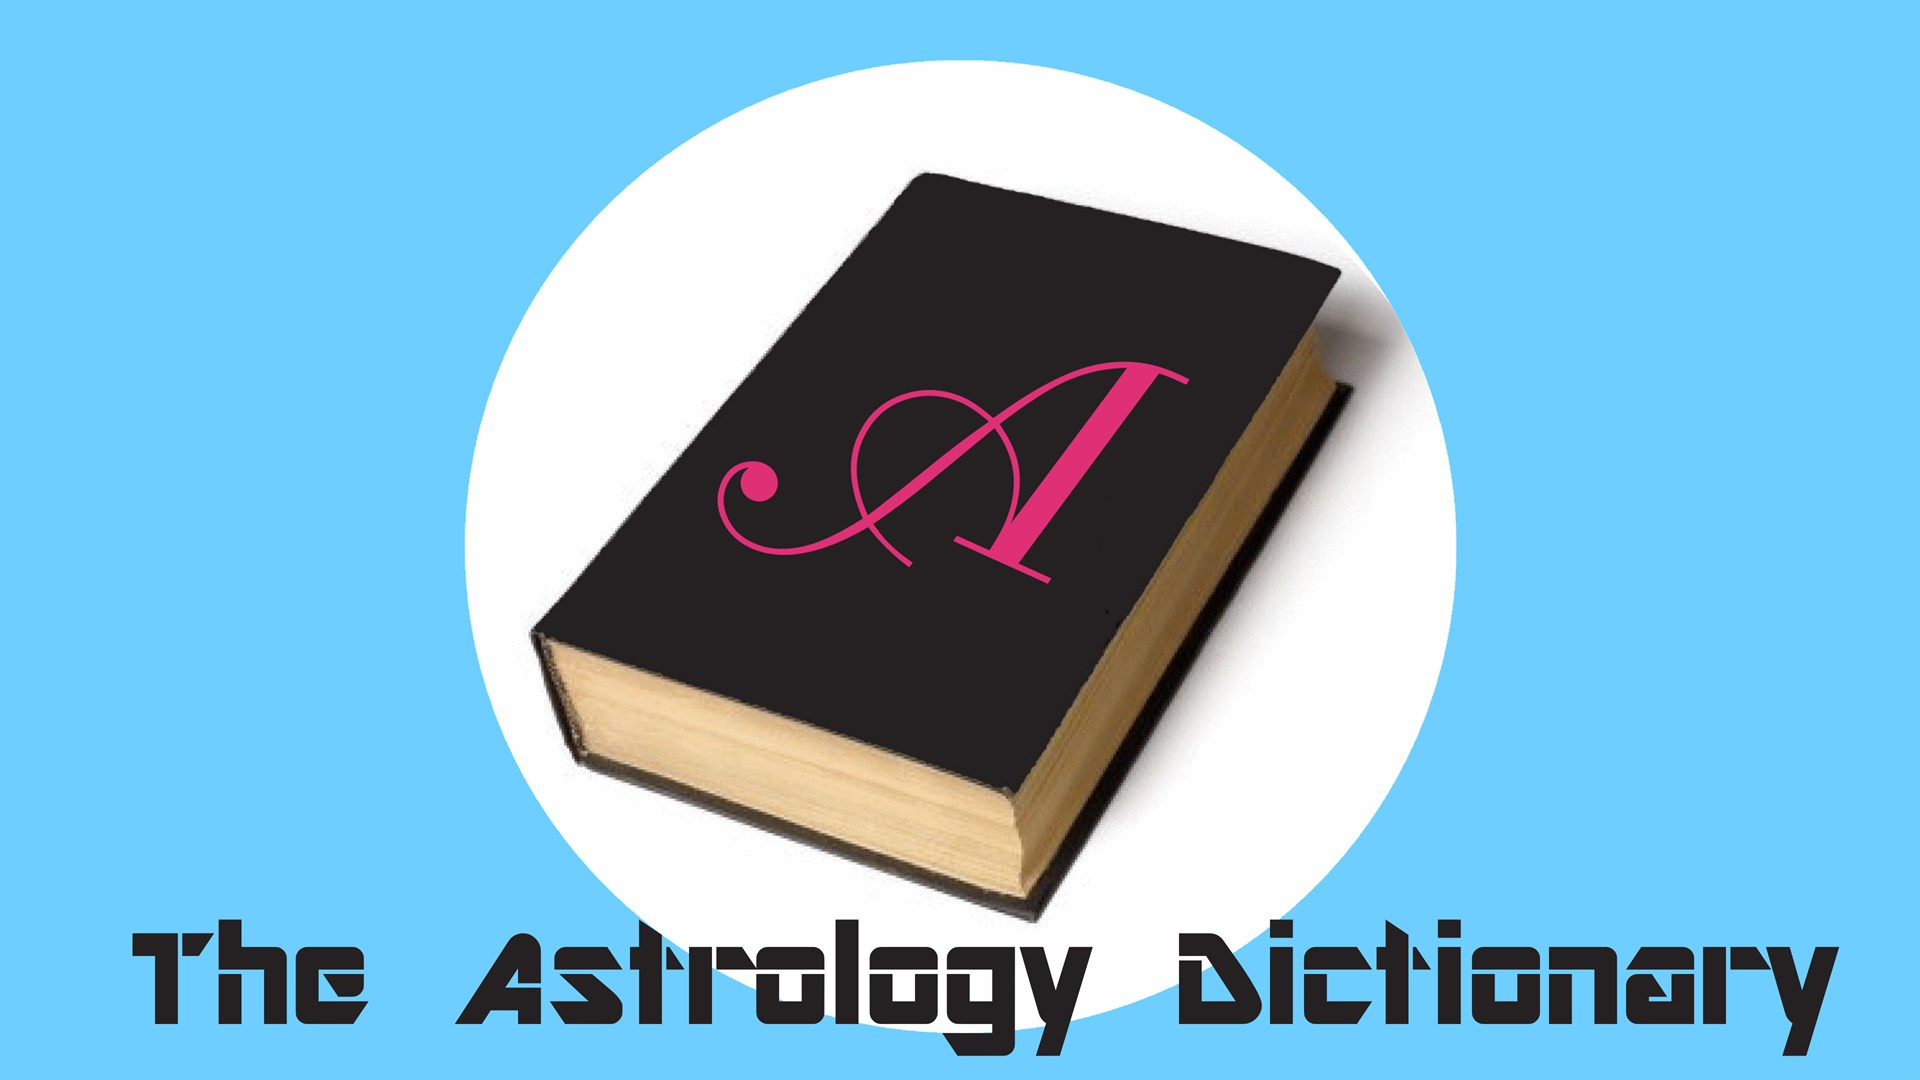 Buy Your Astrology Dictionary - Microsoft Store en-NG